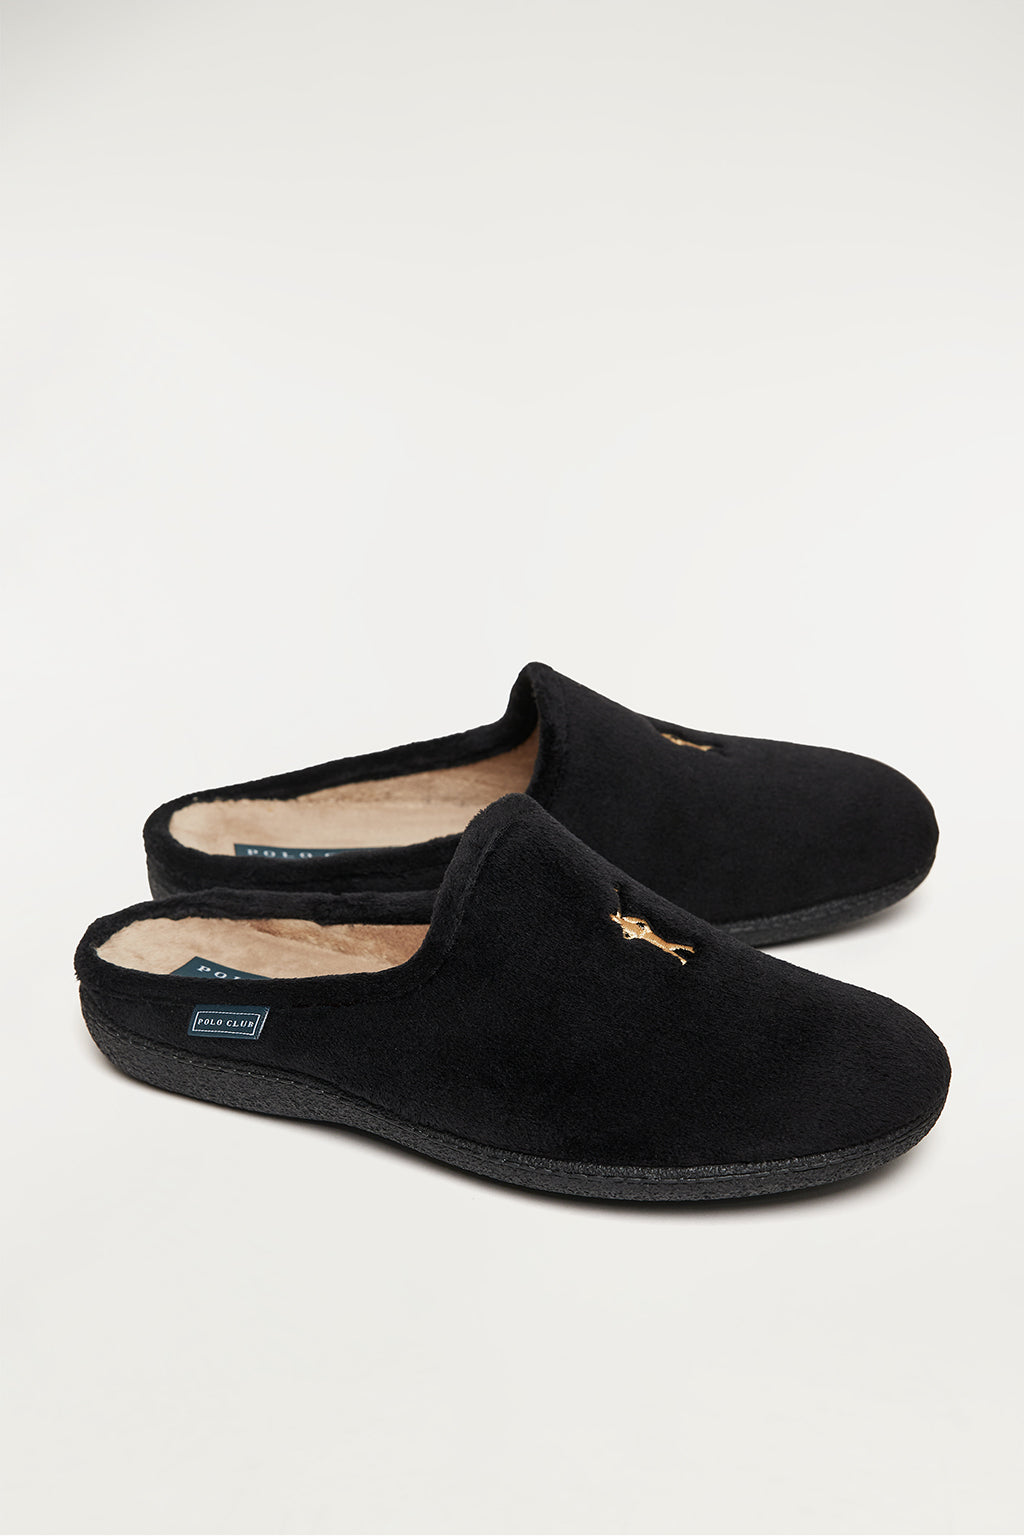 Black sleepers with front embroidered logo in contrast colour